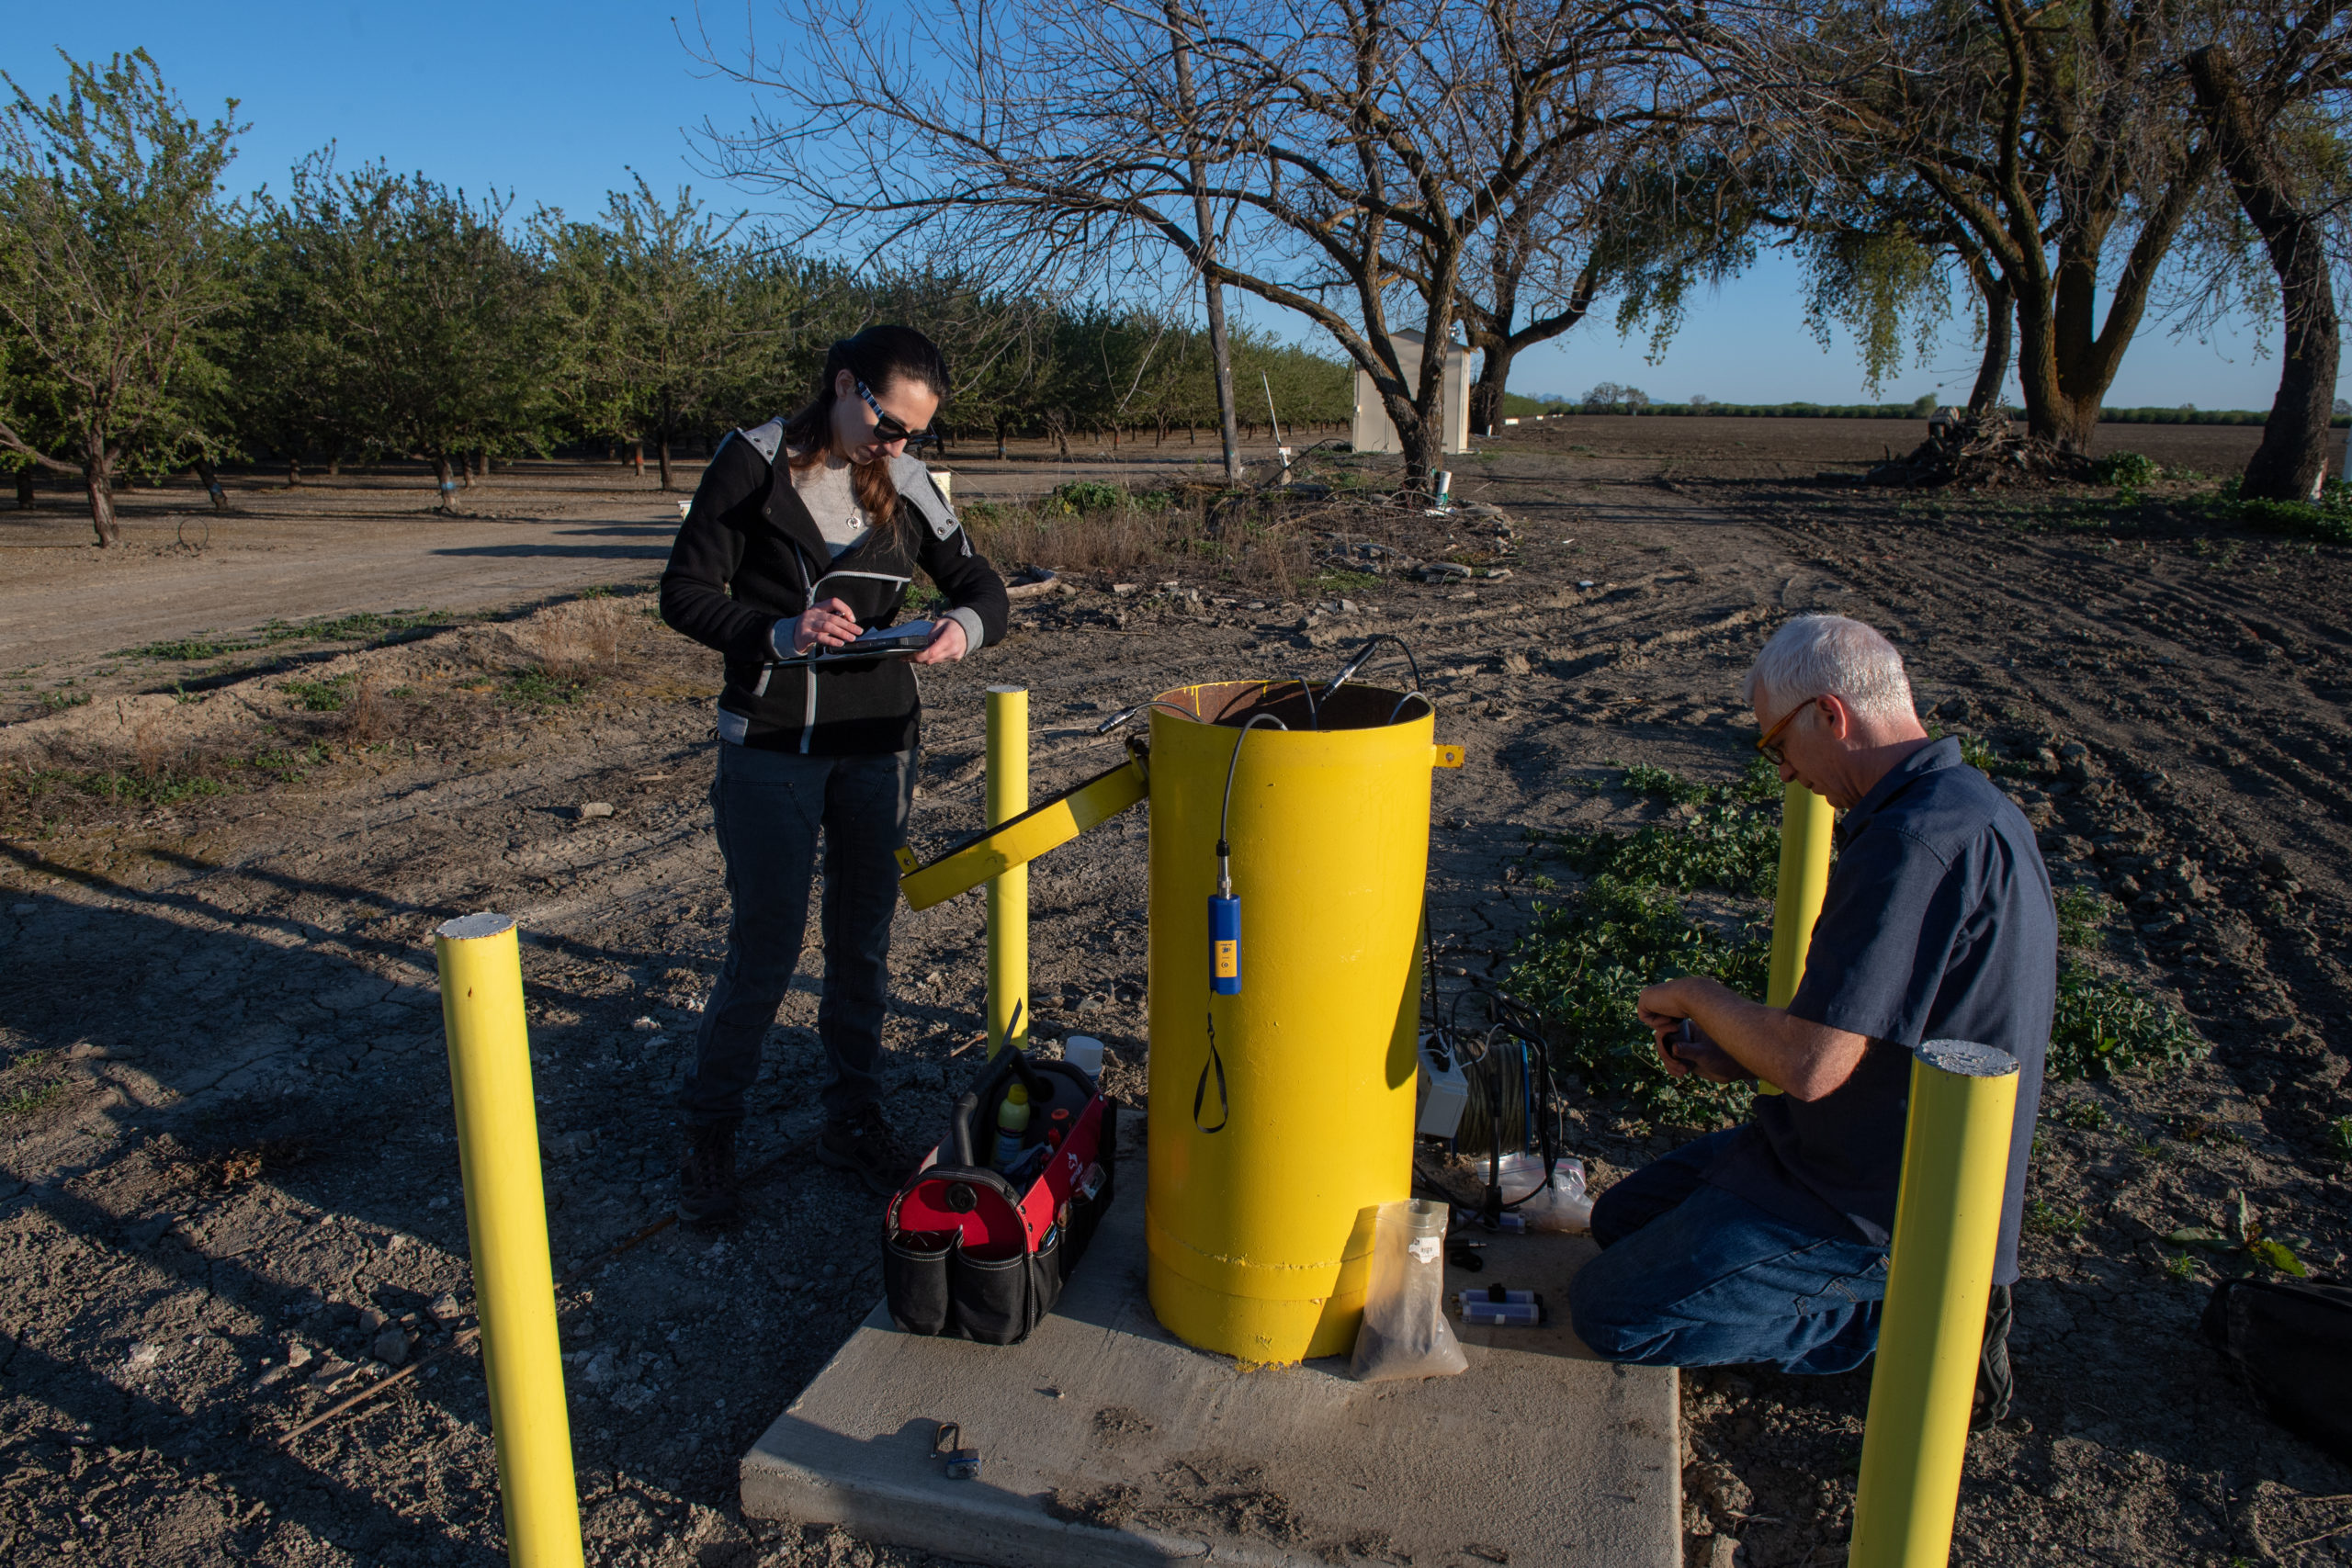 Groundwater level monitoring. Photo by Kelly M. Grow / California Department of Water Resources.